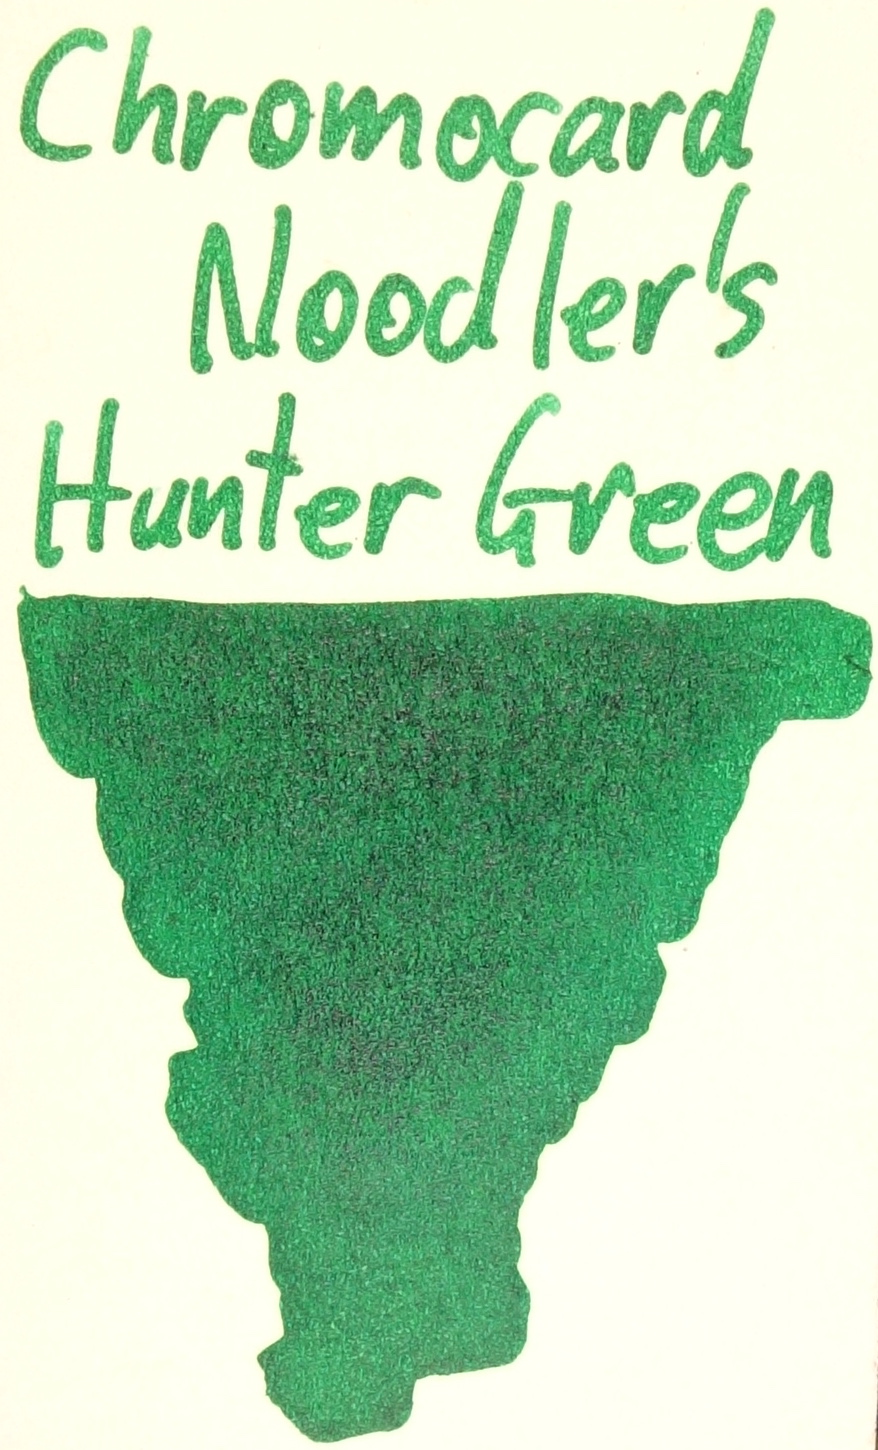 Noodler's Hunter Green Chromocard.JPG